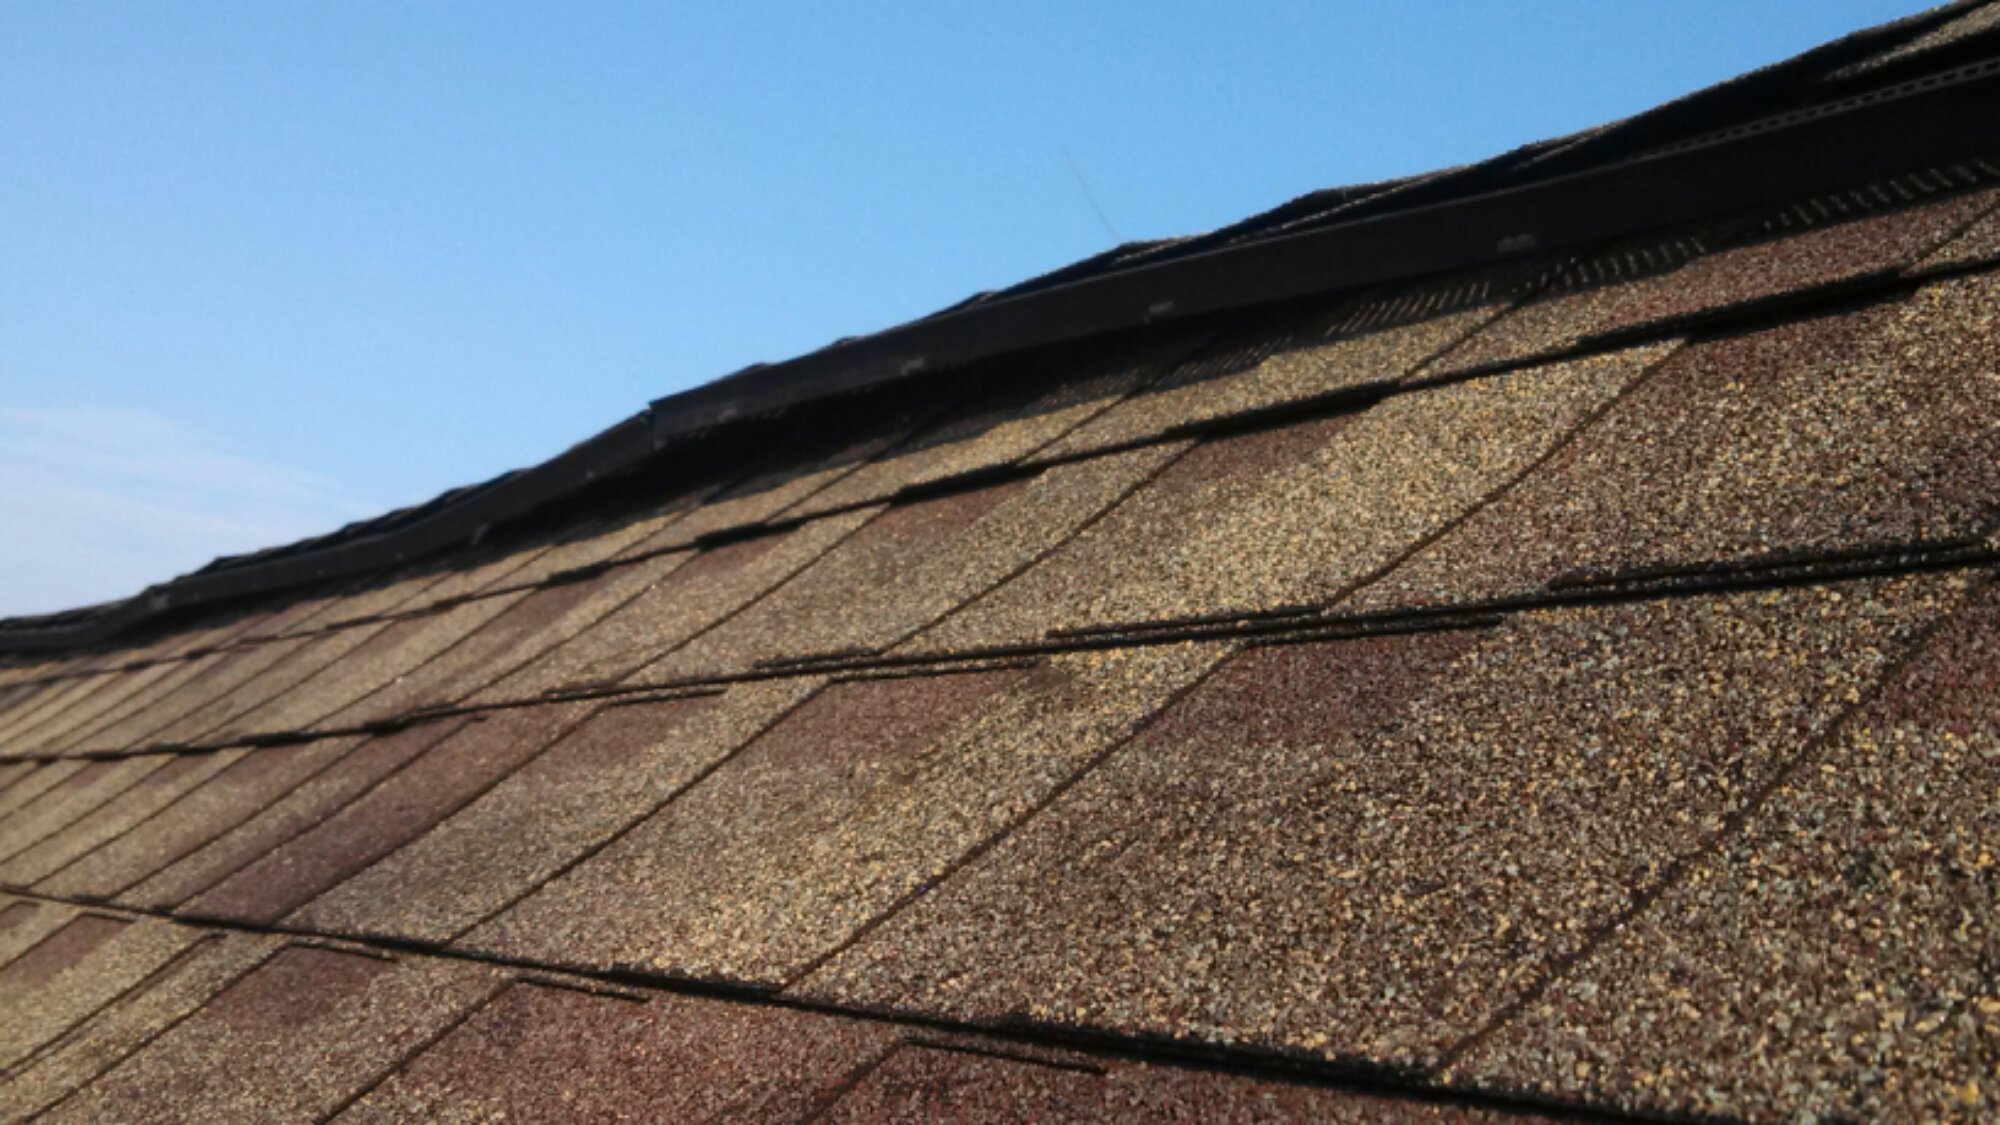 Get Rid Of Bats In Attic Roof Vents Grand Blanc 48439